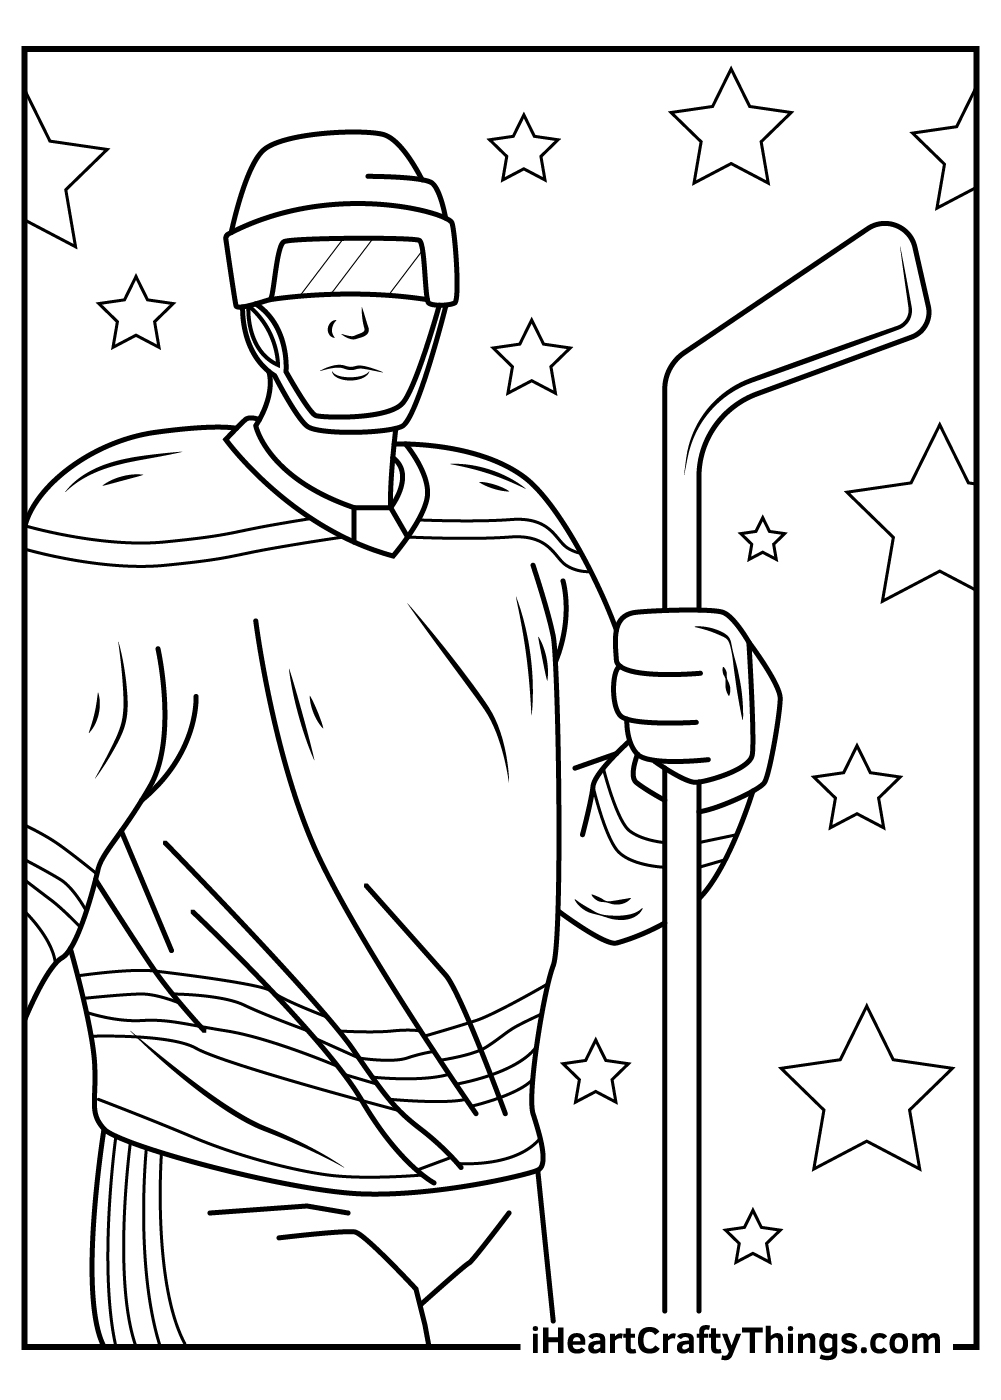 nhl stars coloring pages free download